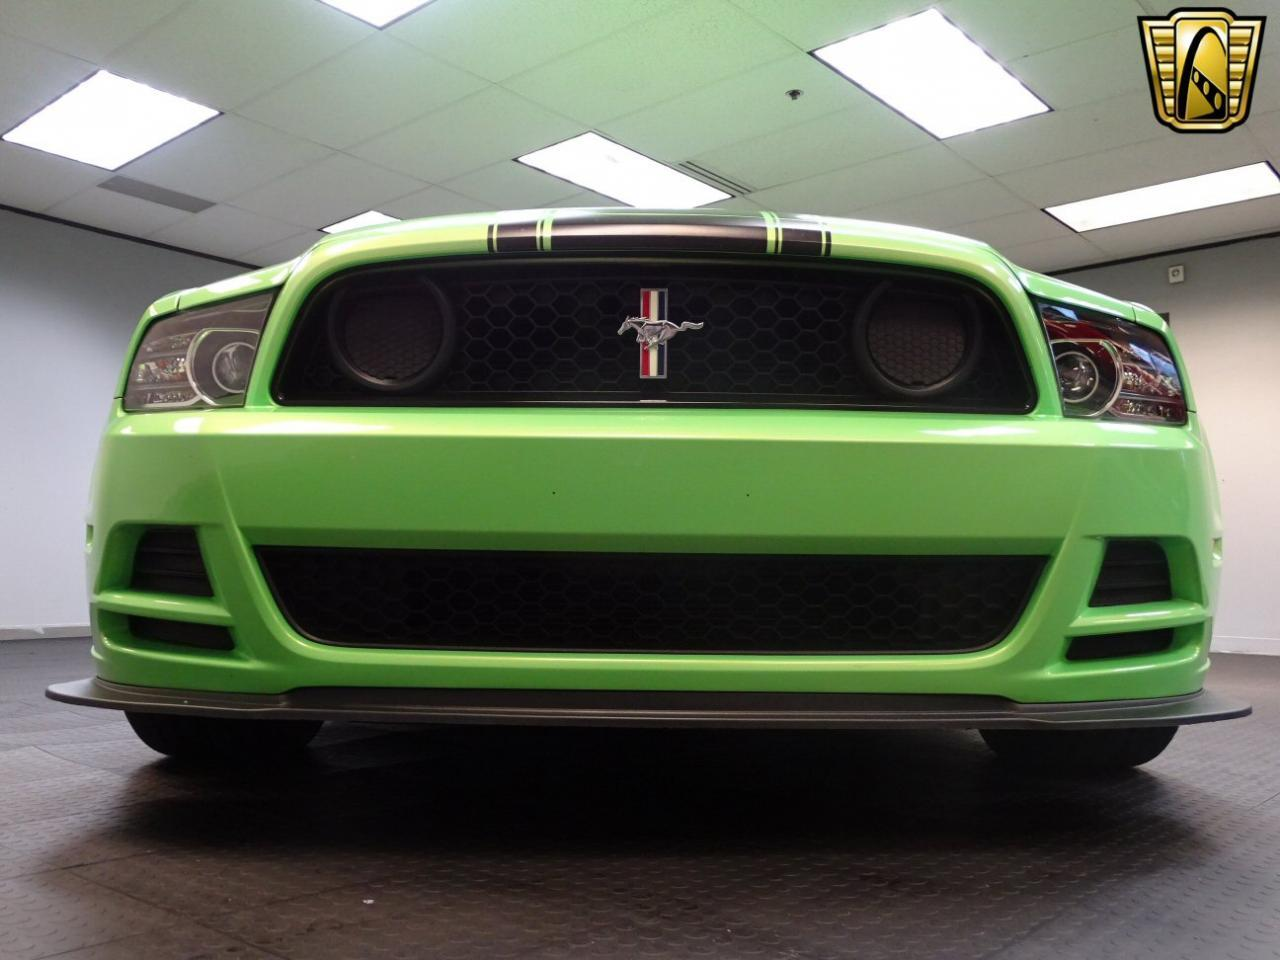 Large Picture of 2013 Ford Mustang located in Dearborn Michigan Offered by Gateway Classic Cars - Detroit - MGI5